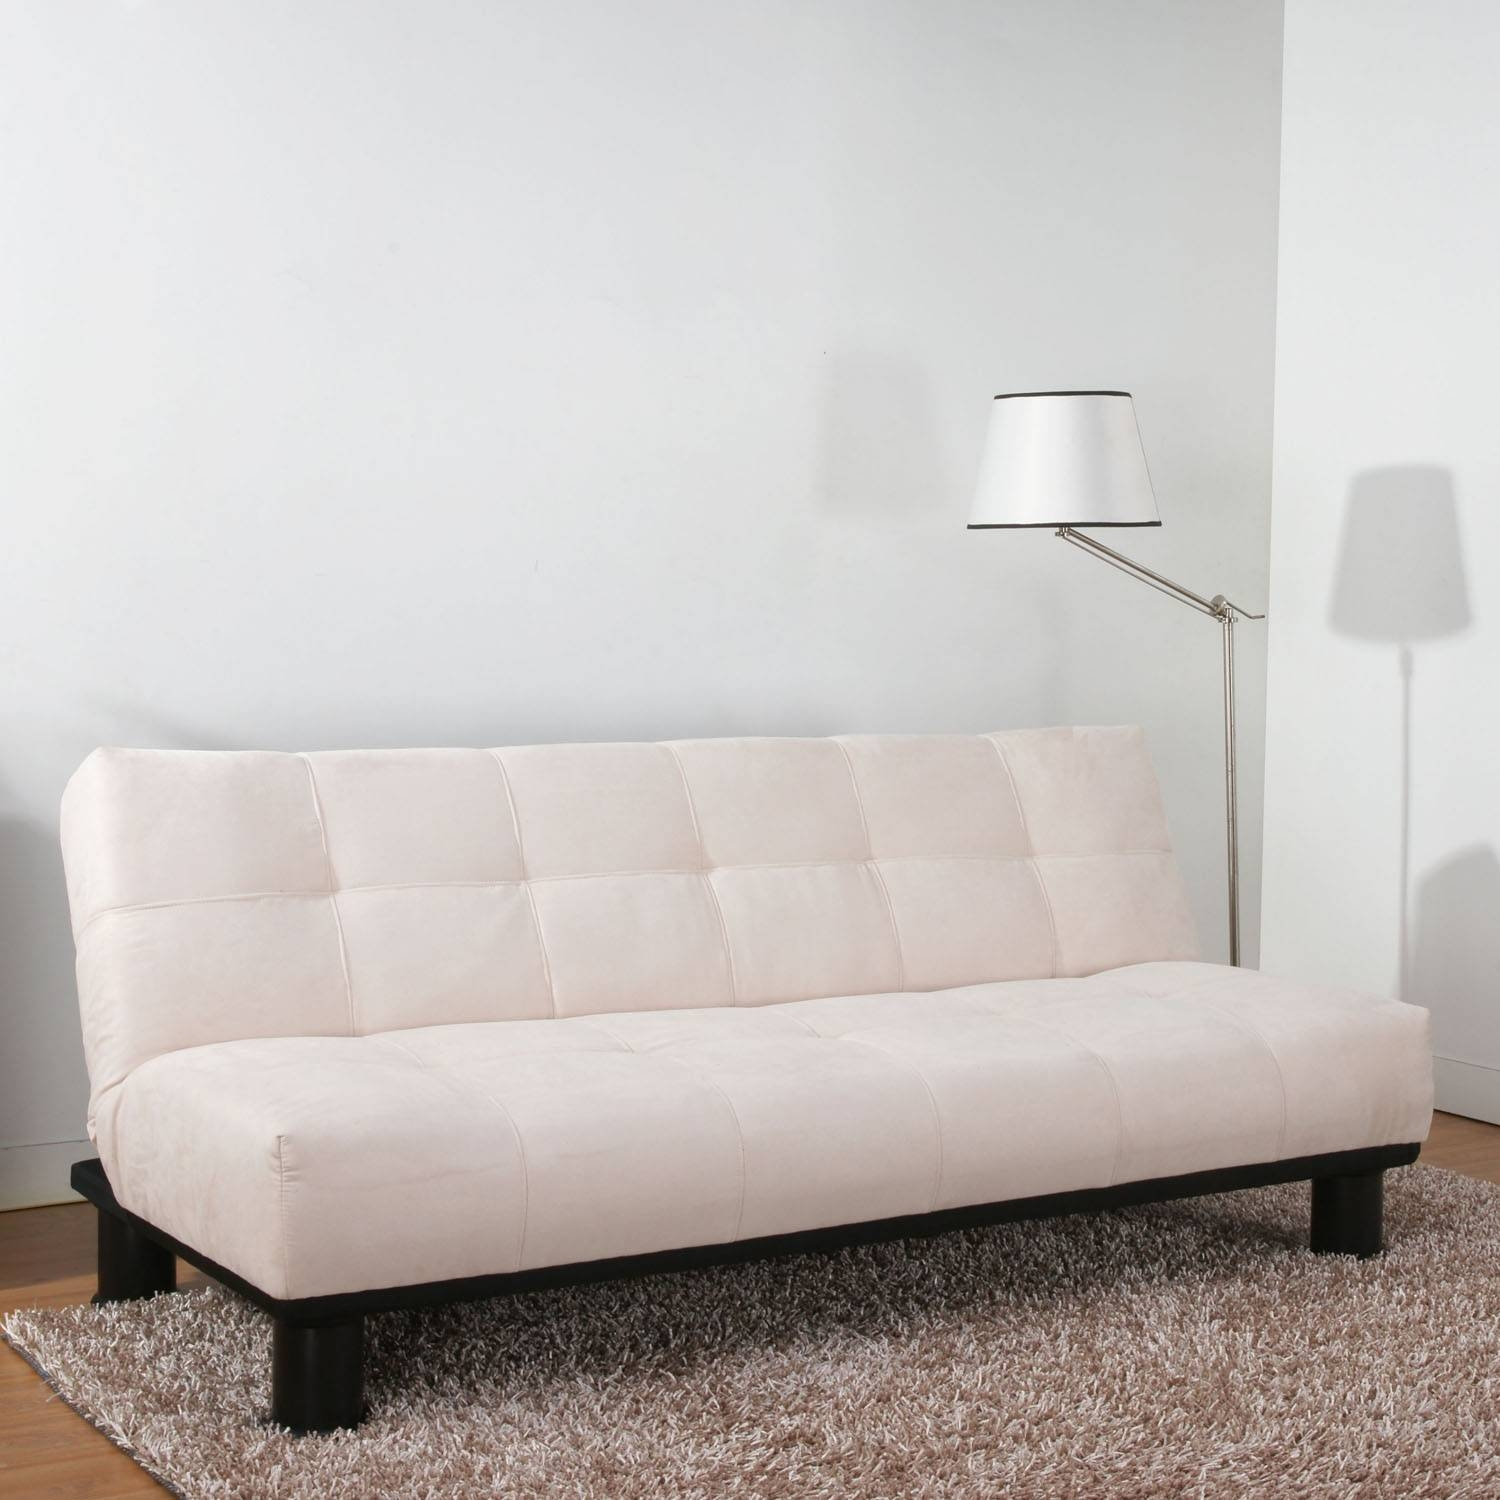 Bella Beige Faux Suede Sofa Bed 1Jpg, Suede Sofa - Avworld in Faux Suede Sofa Bed (Image 2 of 25)